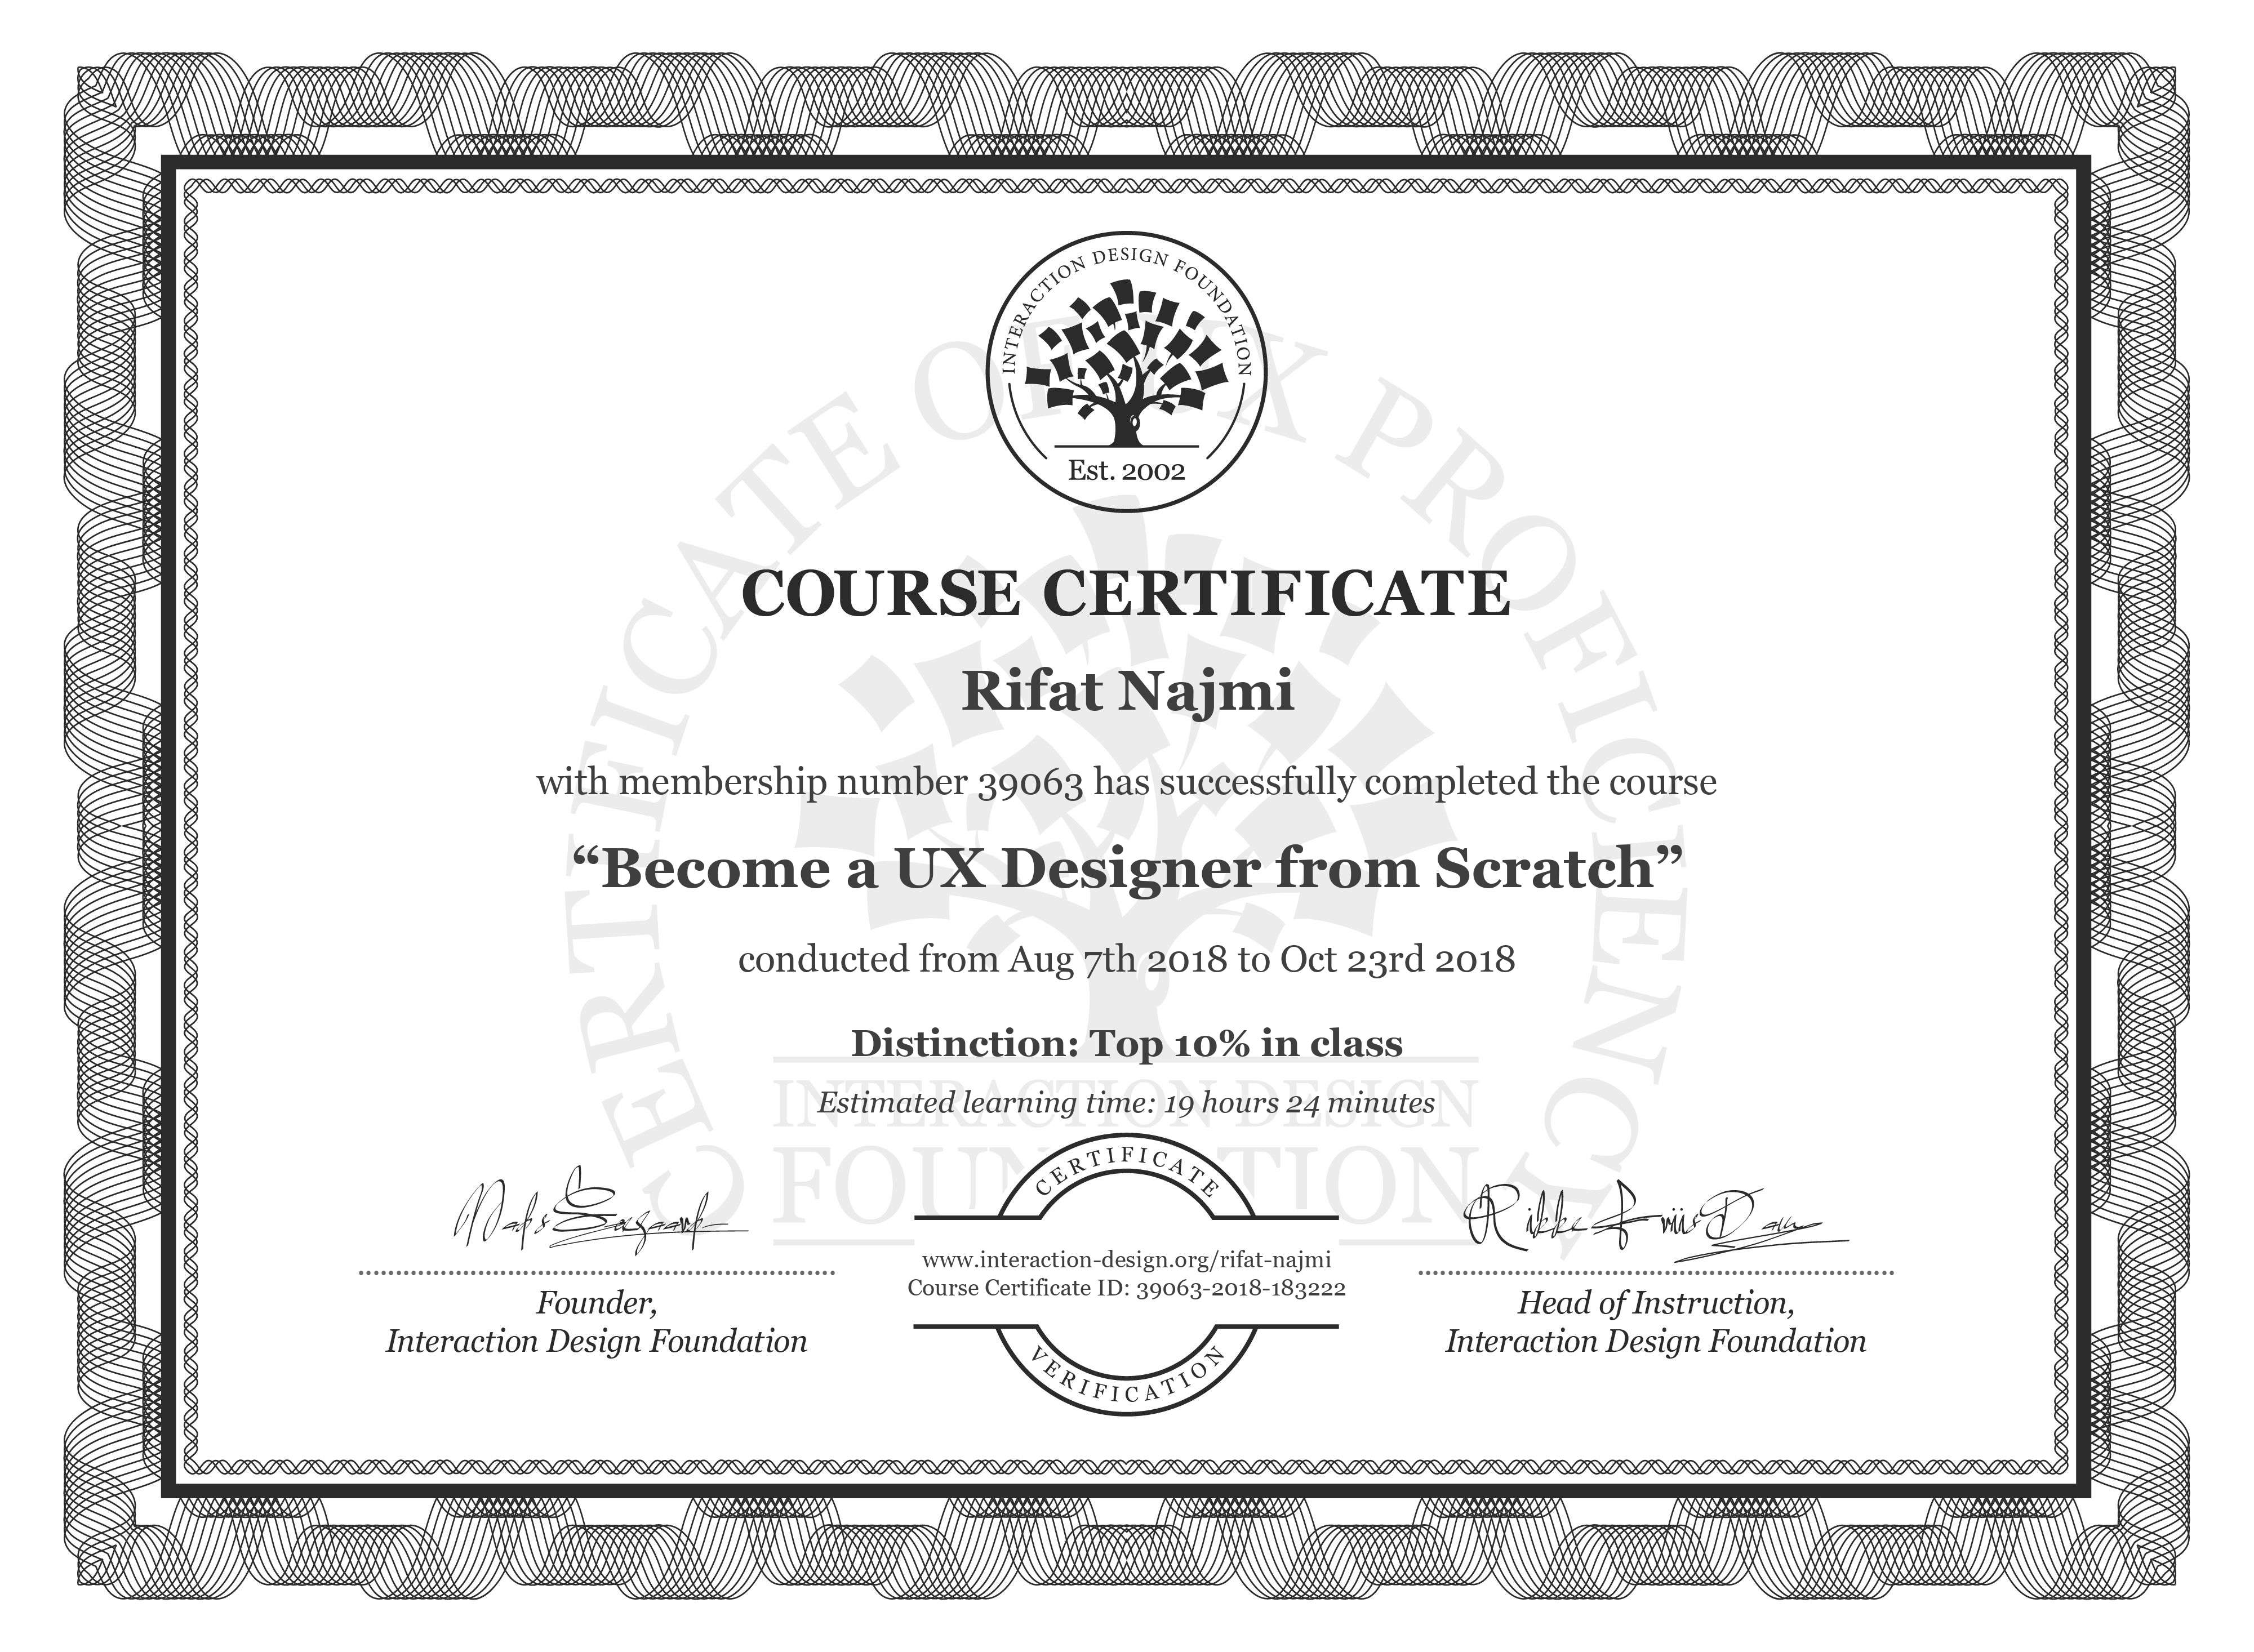 Rifat Najmi's Course Certificate: User Experience: The Beginner's Guide